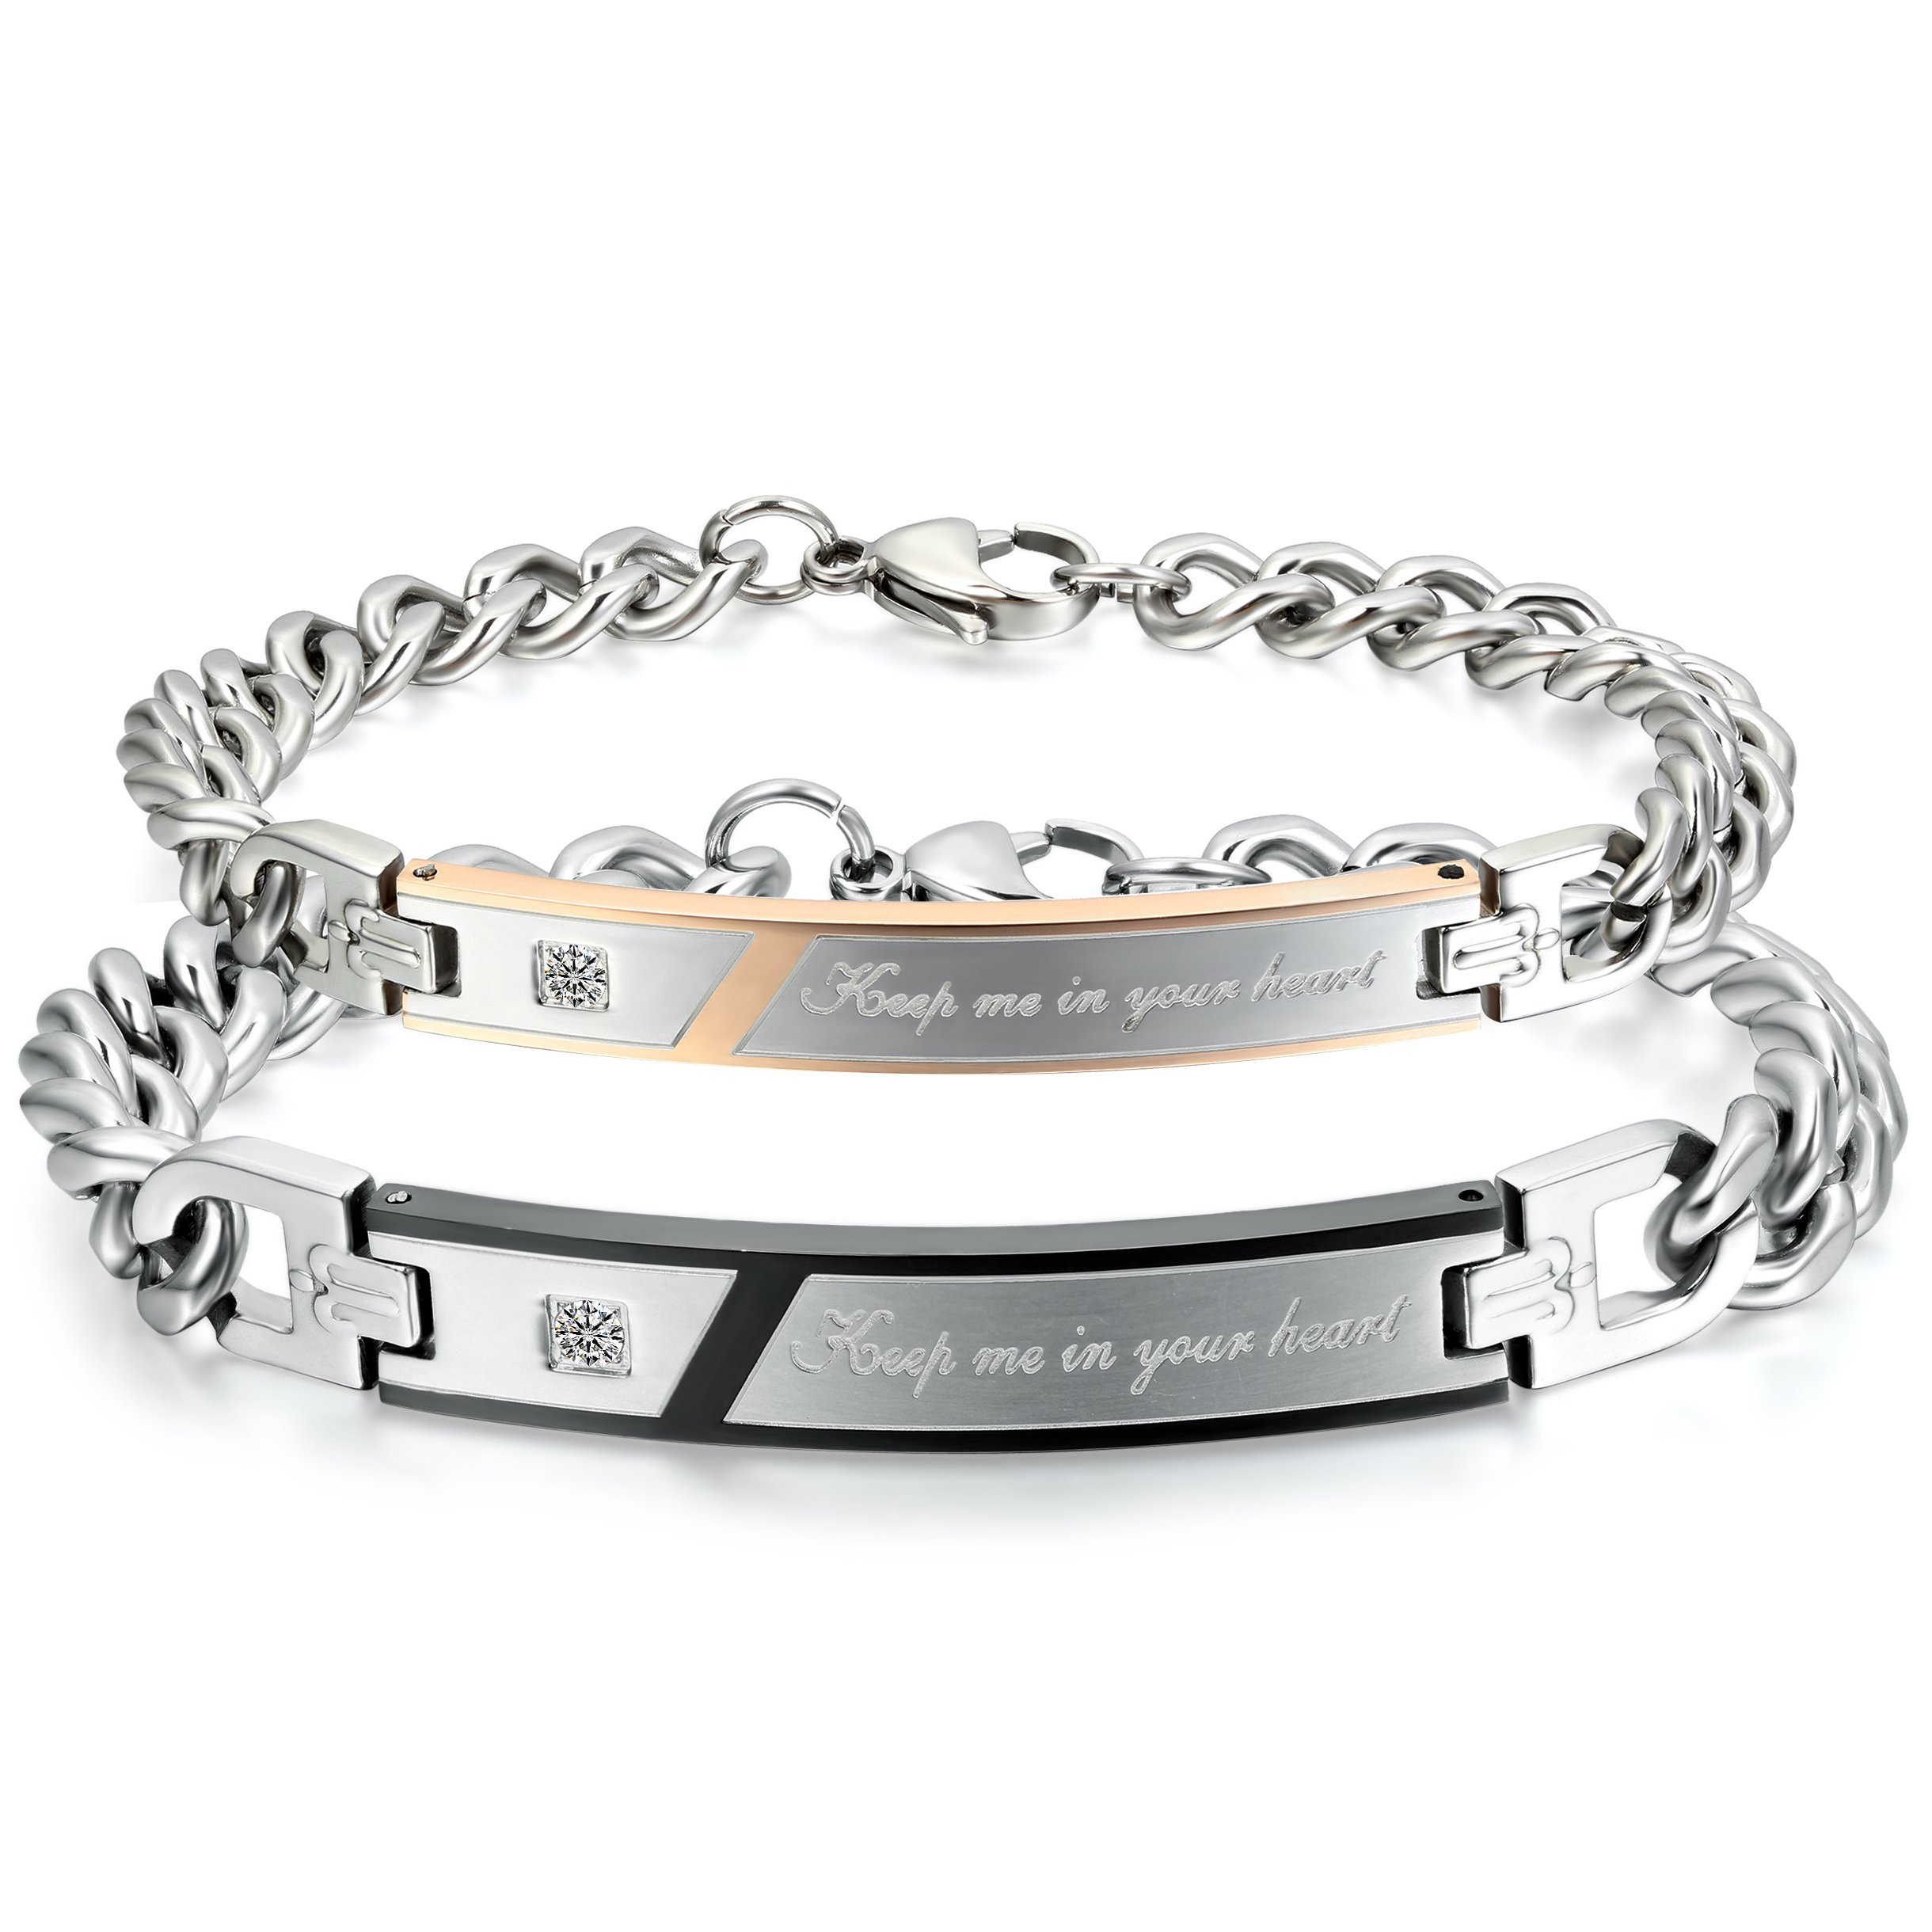 OIDEA 2pcs Stainless Steel Cubic Zirconia His Queen Her King Bracelets,Romantic Keep Me in Your Heart,CZ Love Charm Bangle Braclets for Valentines Gifts